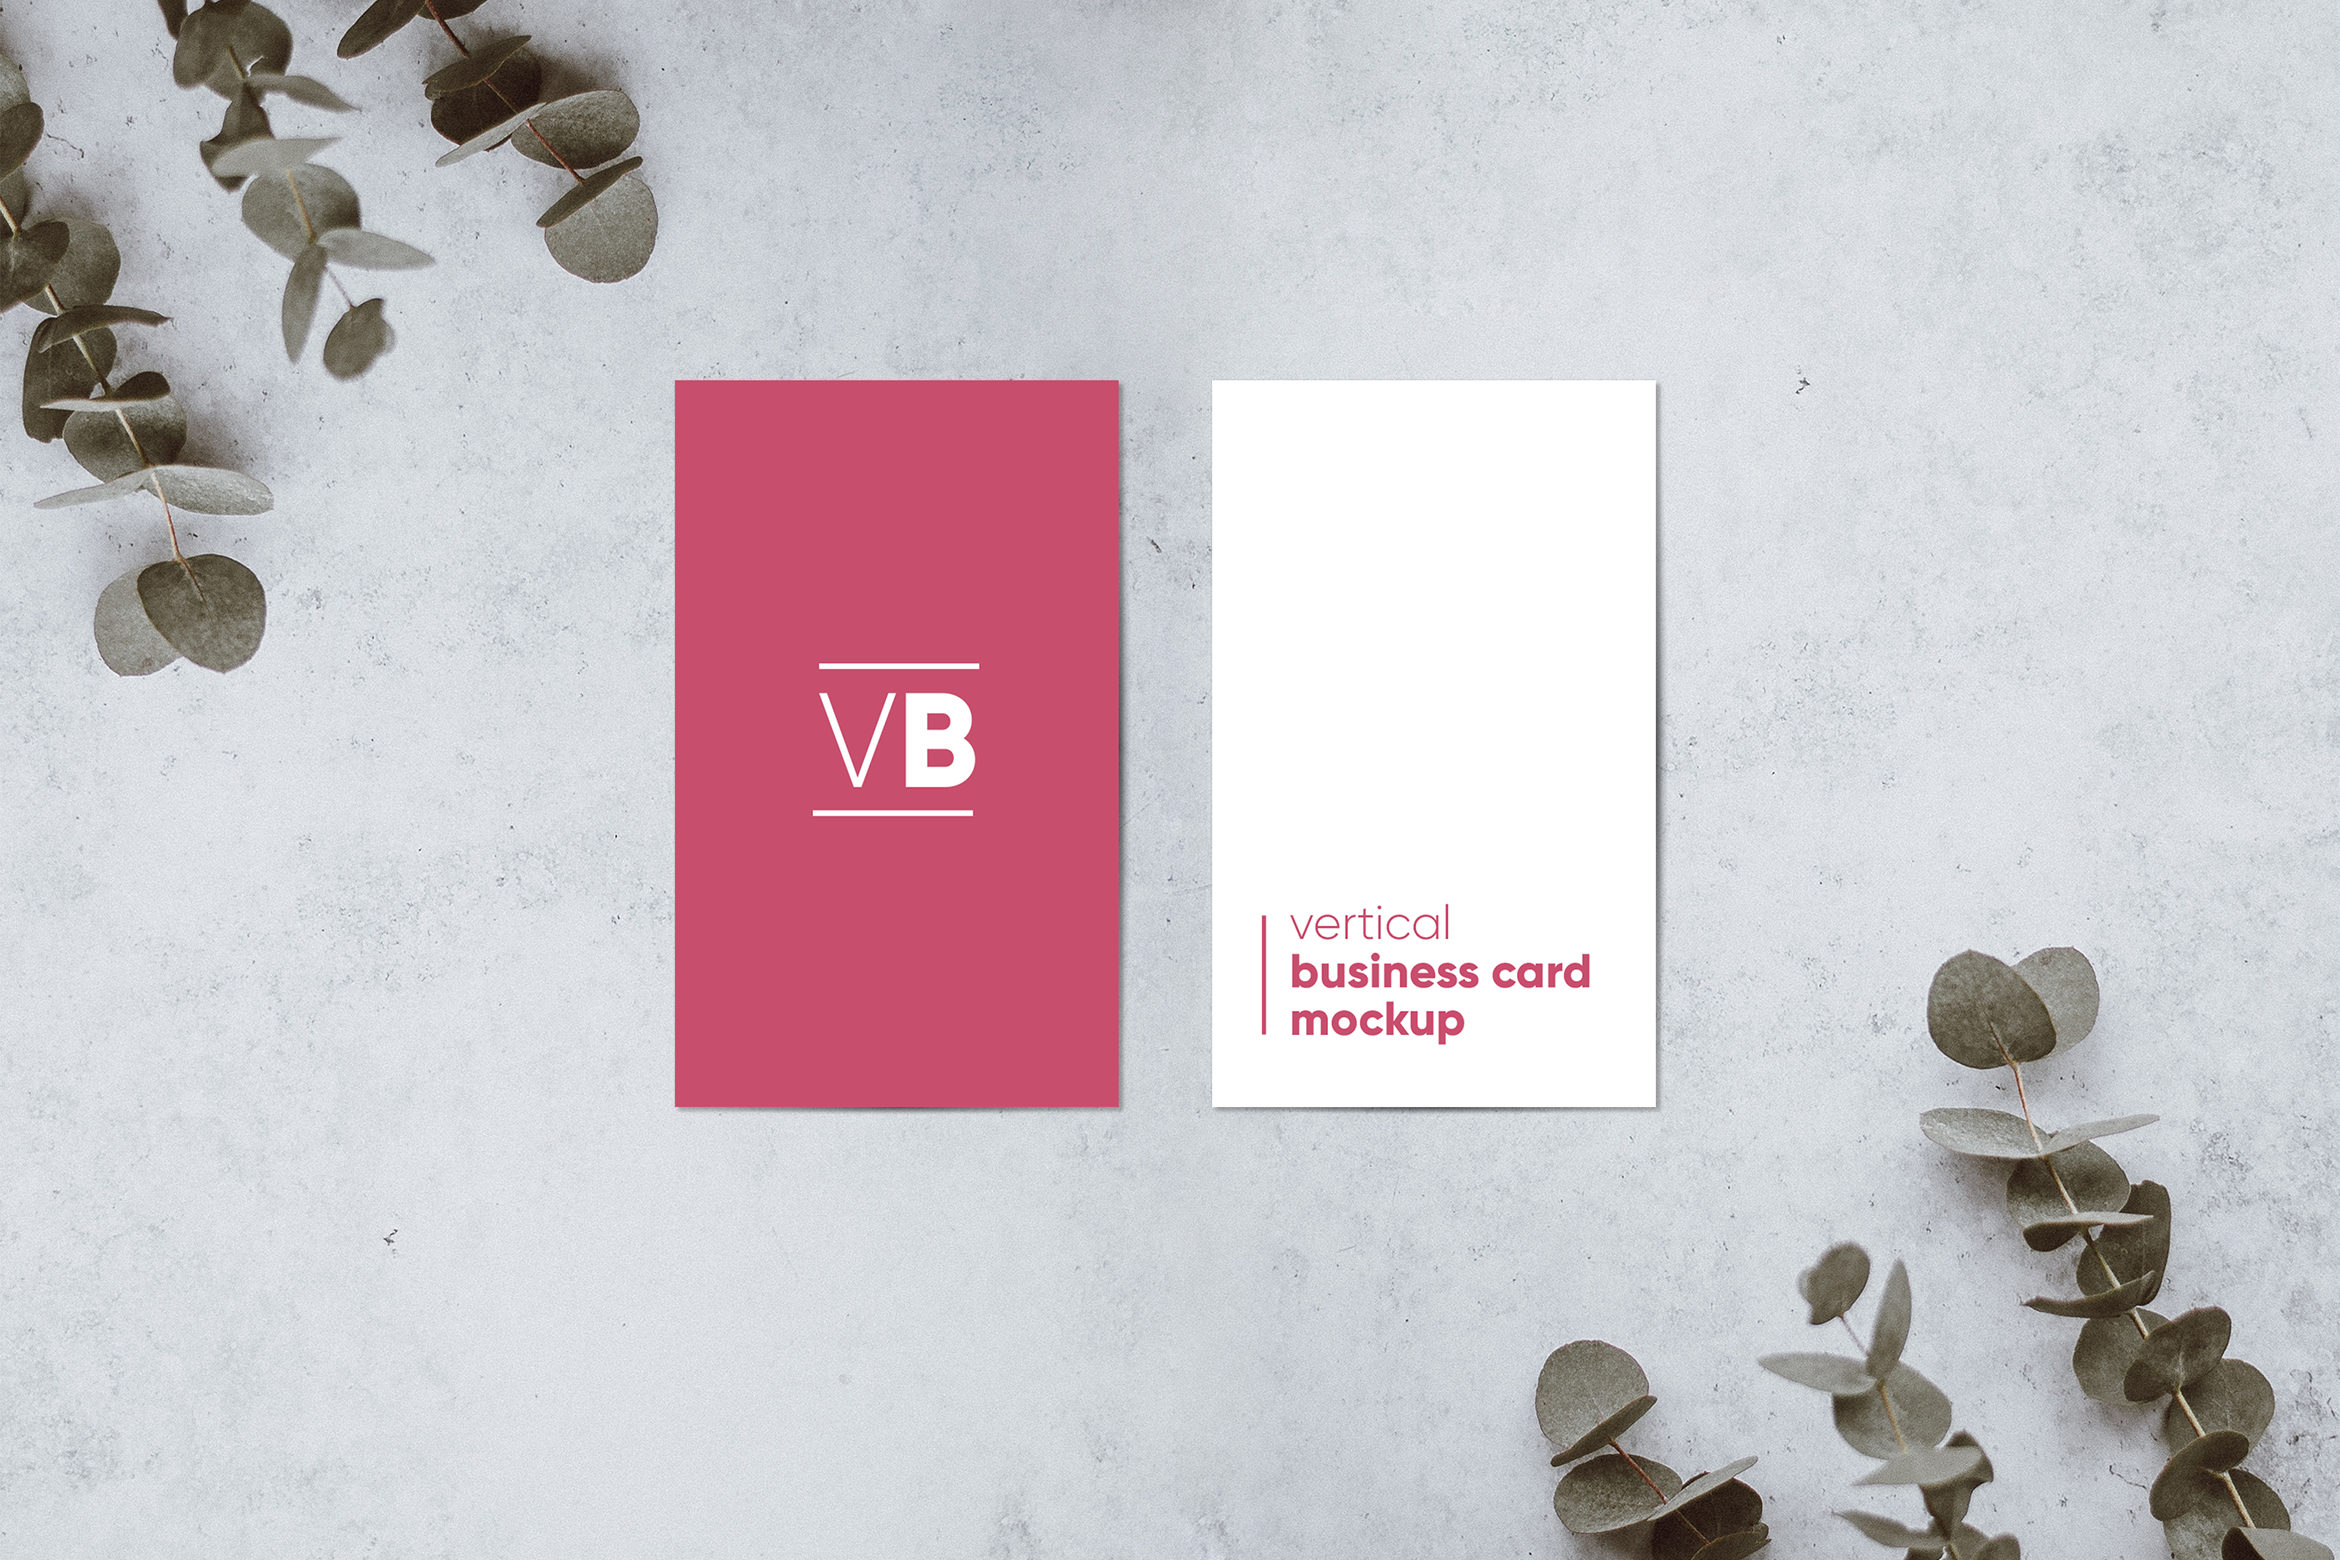 Vertical business card mockup by wildon design bundles vertical business card mockup example image 1 colourmoves